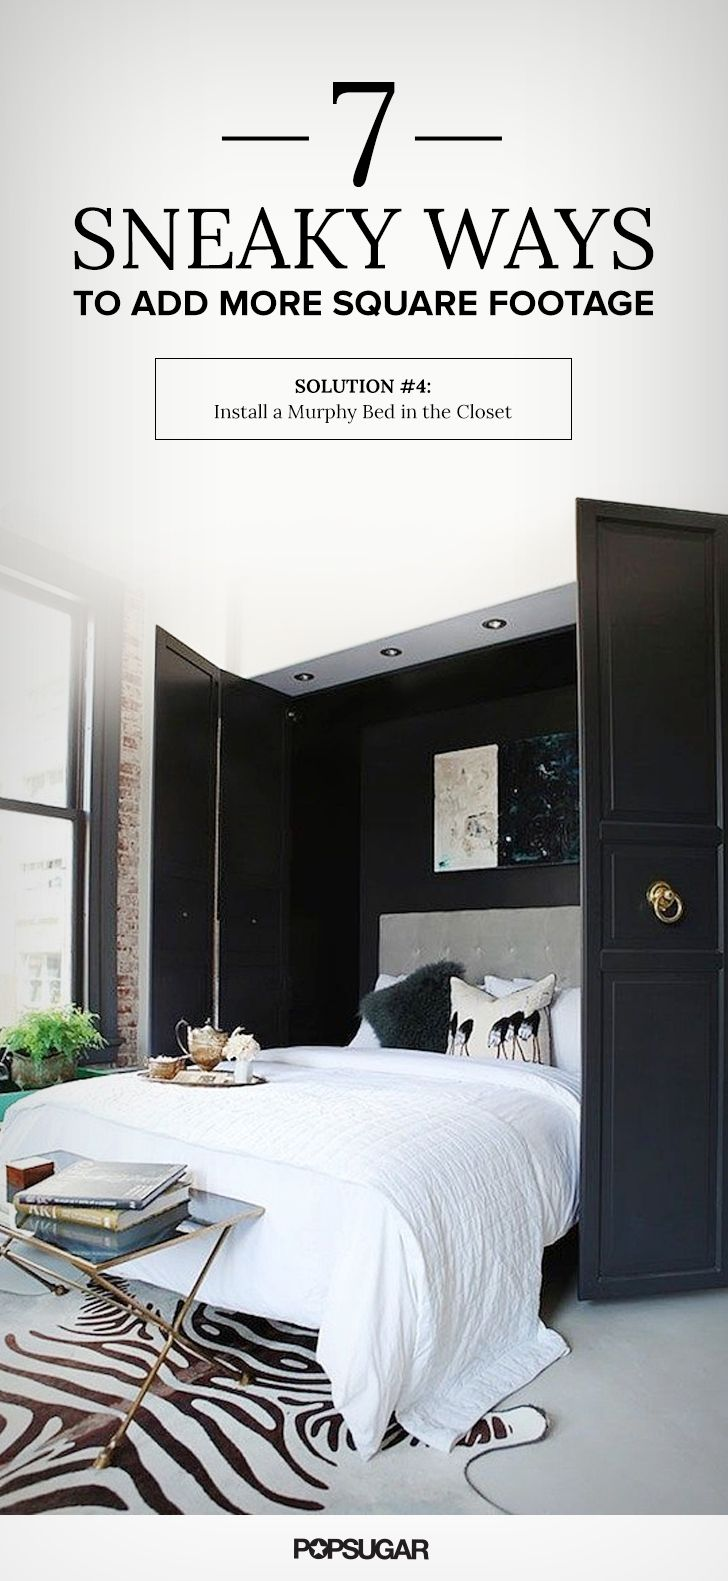 Tiny Box Room Ikea Stuva Loft Bed Making The Most Of: 7 Sneaky Ways To Add More Square Footage